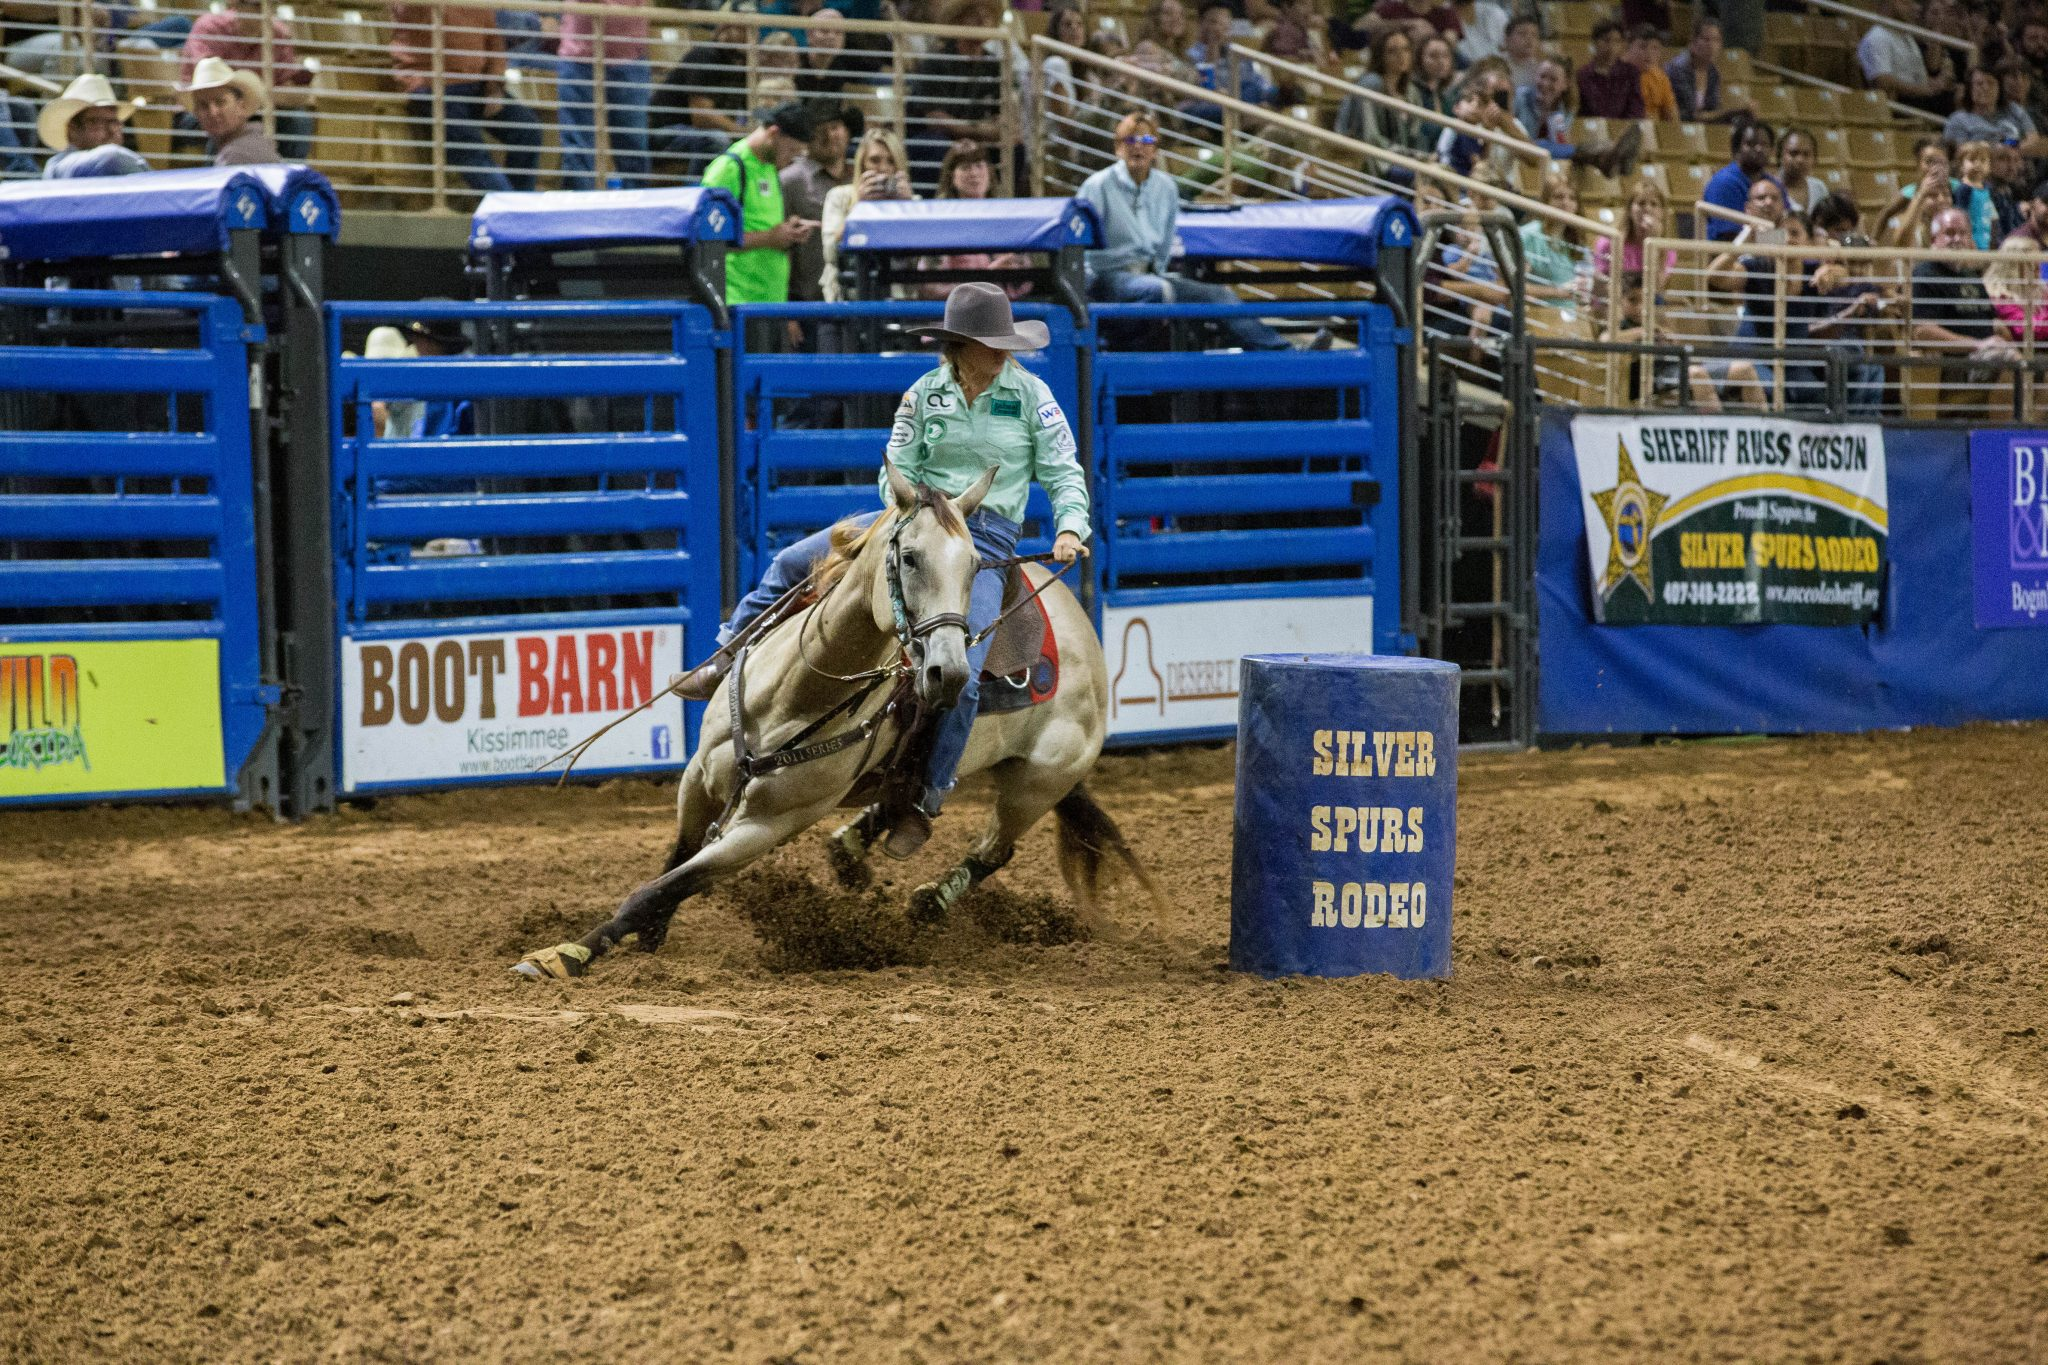 Barrel racing at the Silver Spurs Rodeo